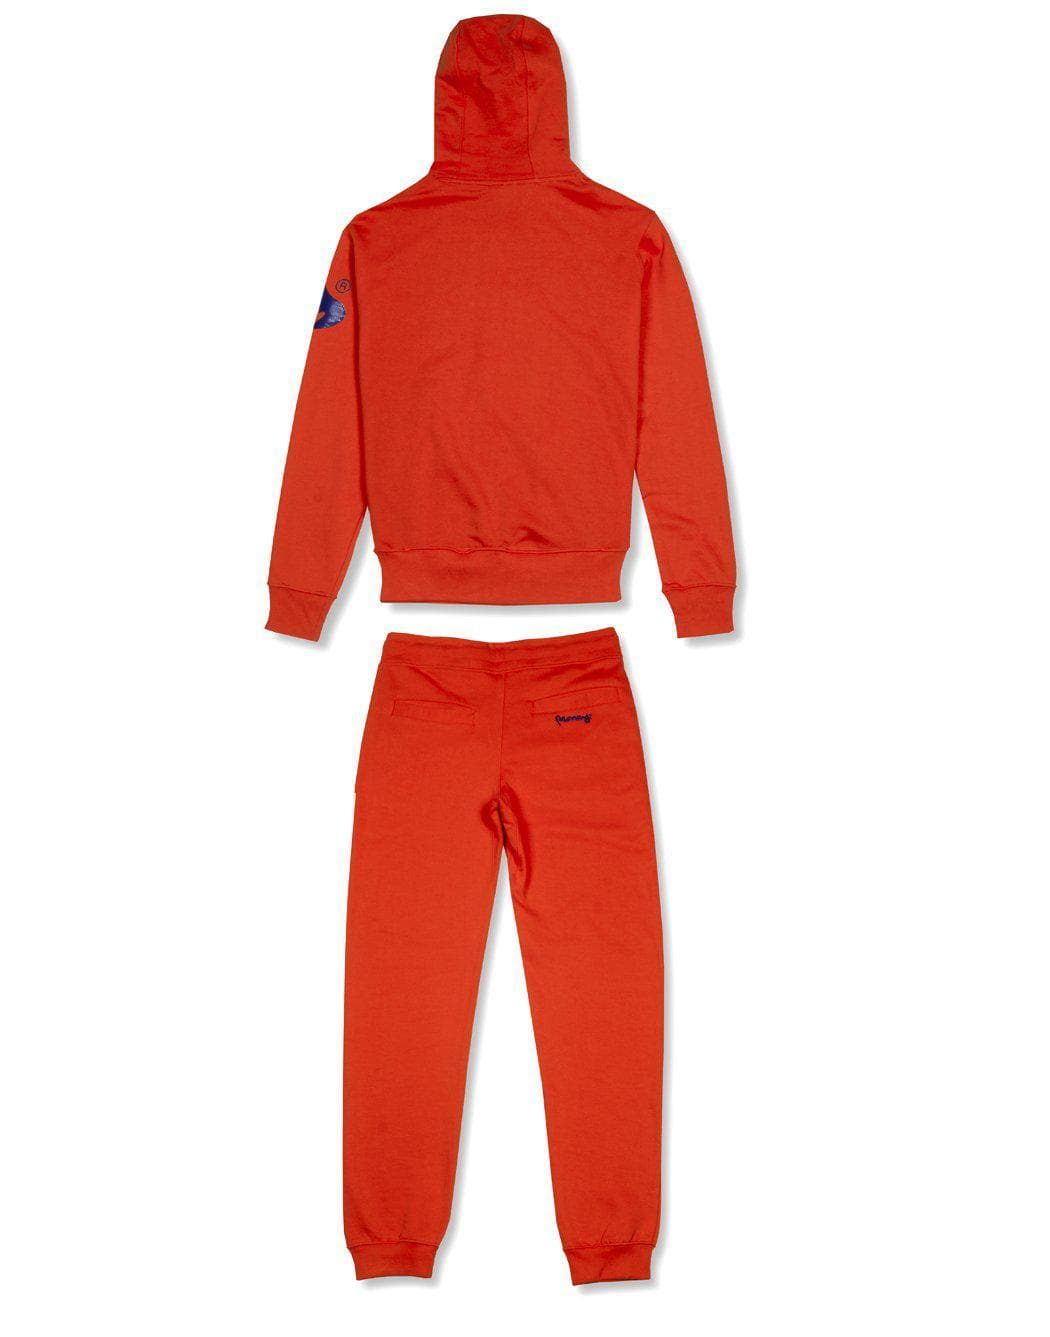 money clothing signature money logo orange hooded  tracksuit